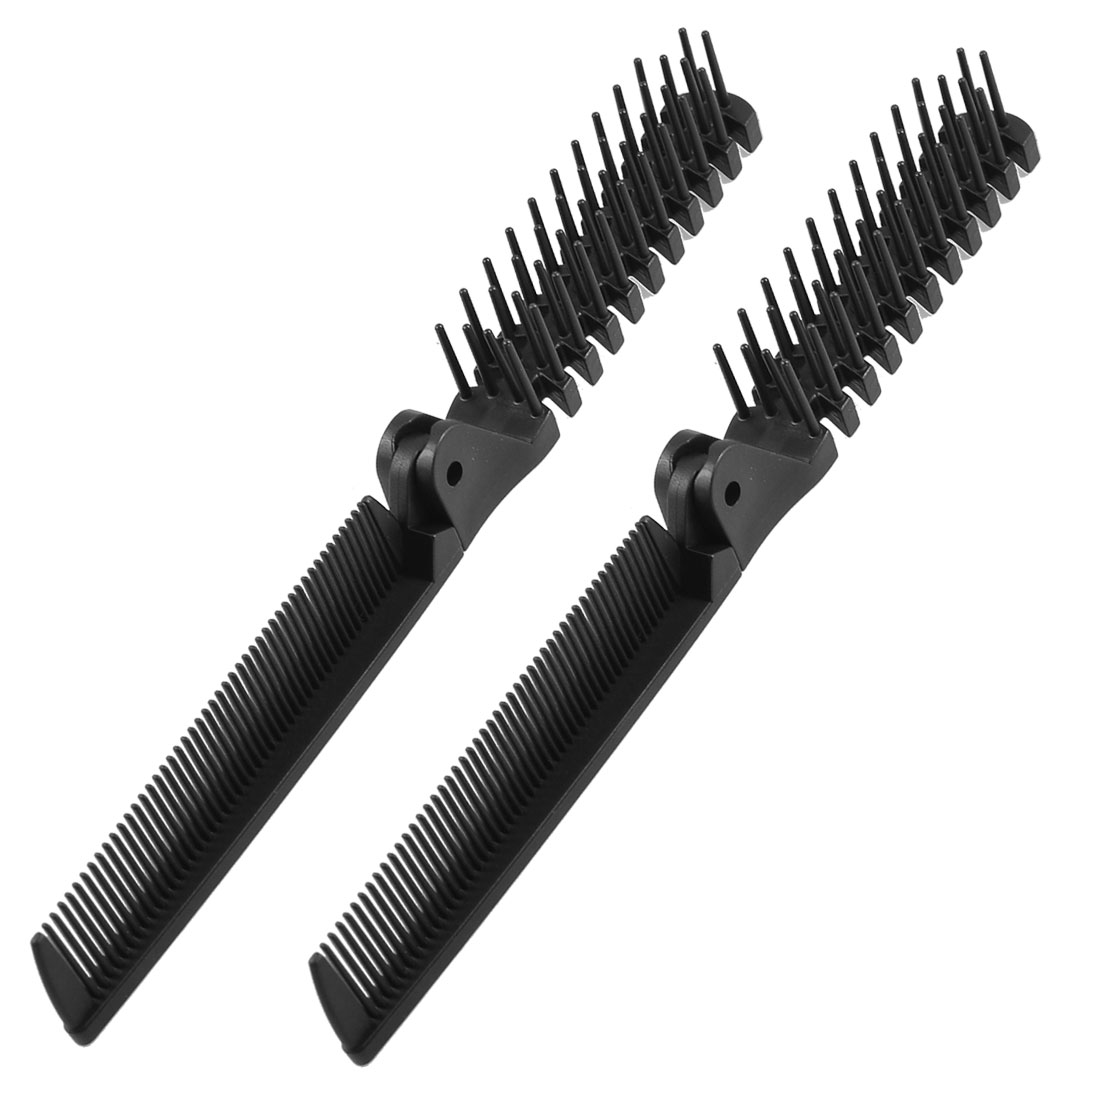 2Pcs Black Fishbone Shape Coarse Fine Teeth 2 Way Foldable Hairdressing Comb